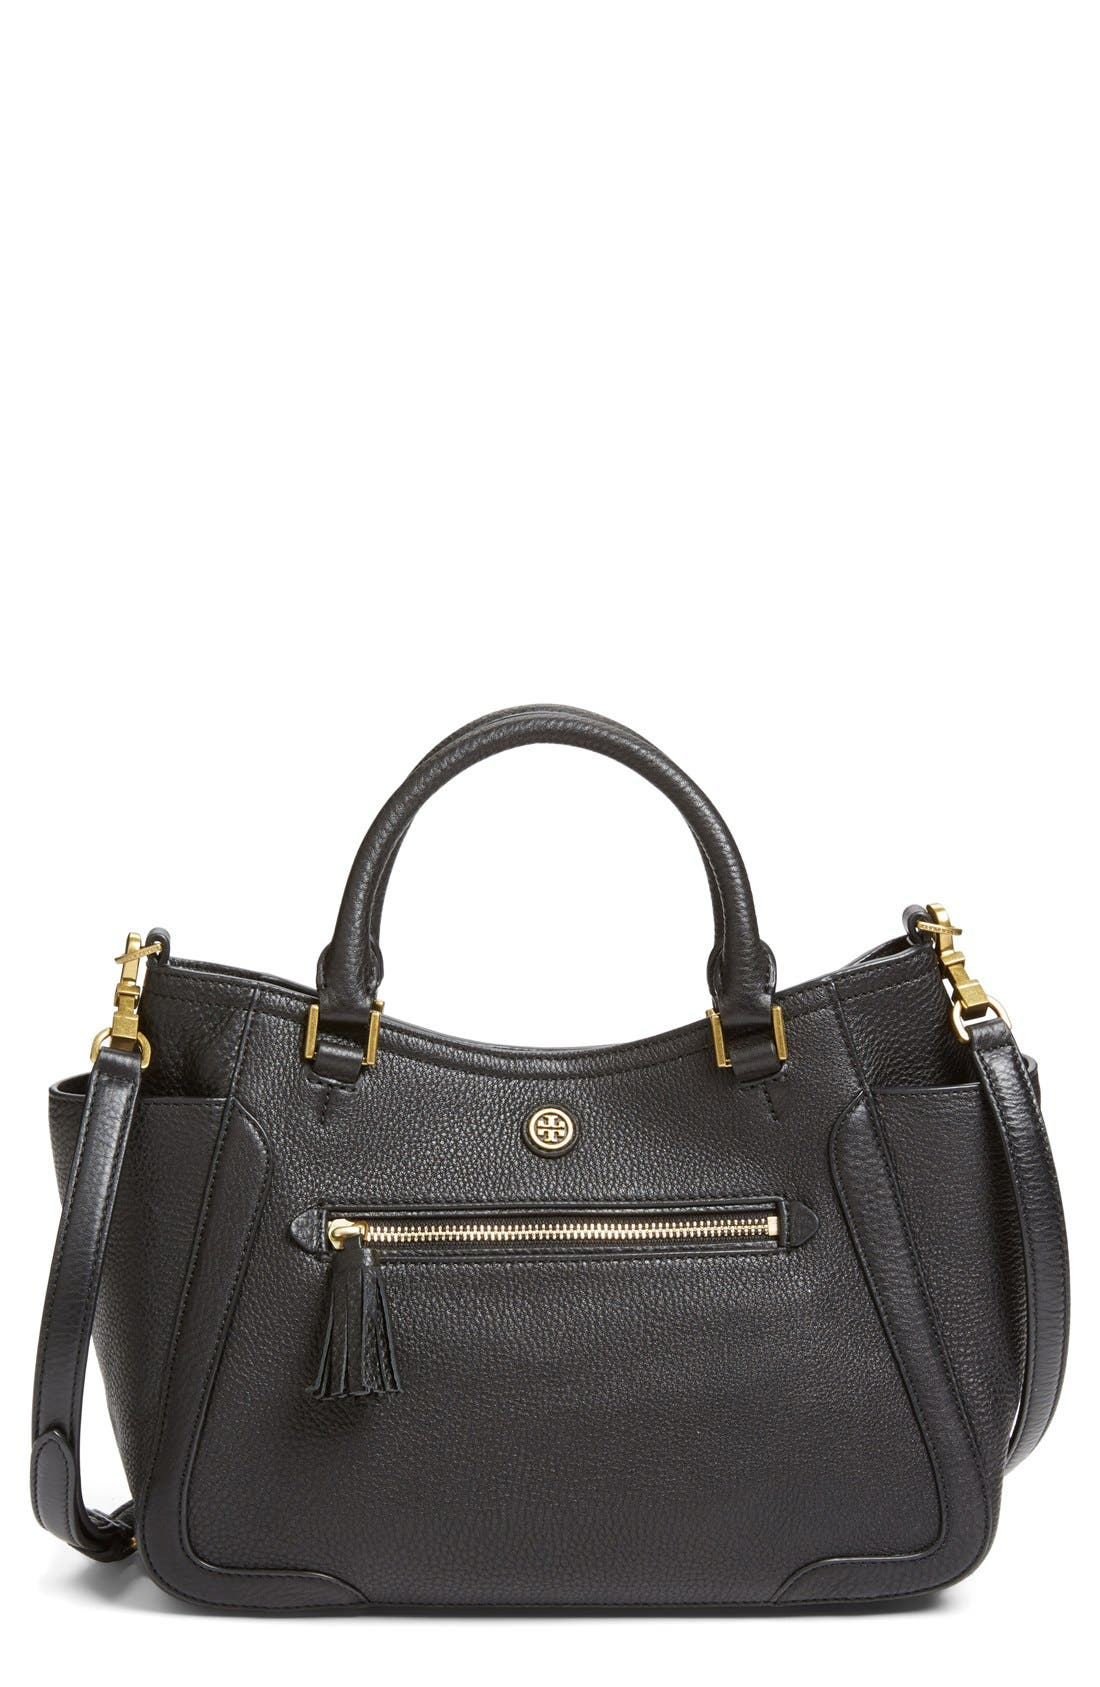 TORY BURCH 'Small Frances' Leather Satchel, Main, color, 001